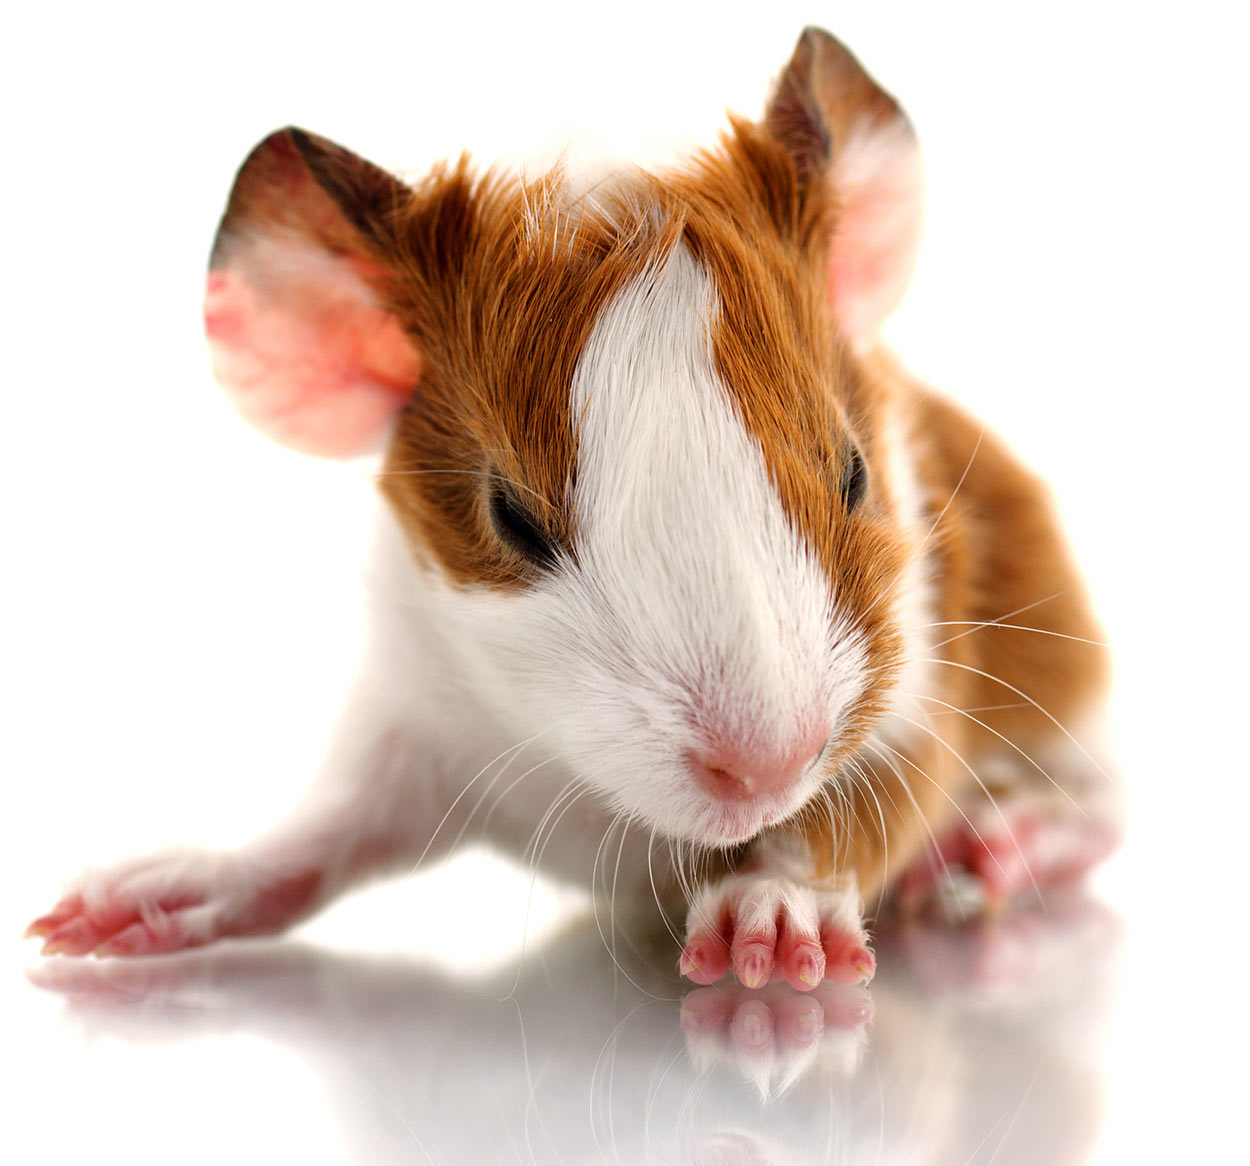 Ivermectin for Guinea Pigs - Squeaks and Nibbles